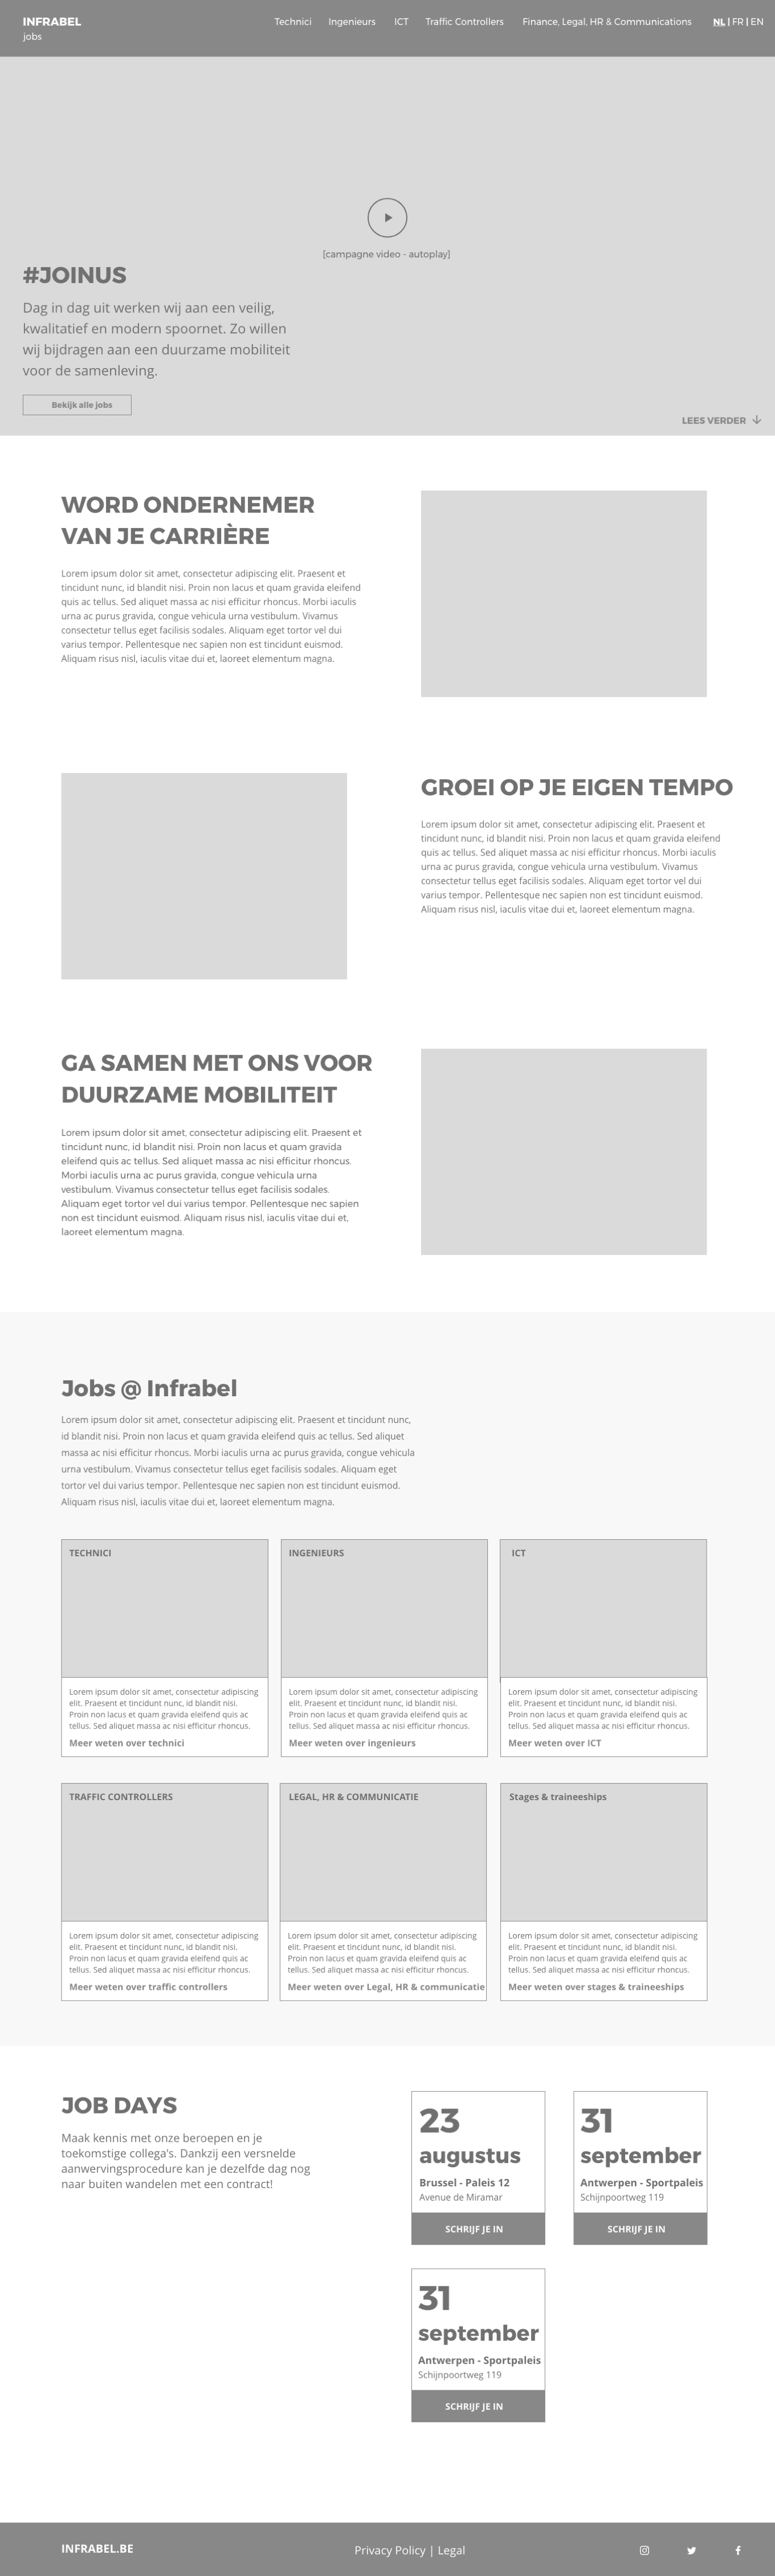 Wireframe of Infrabel's jobs page